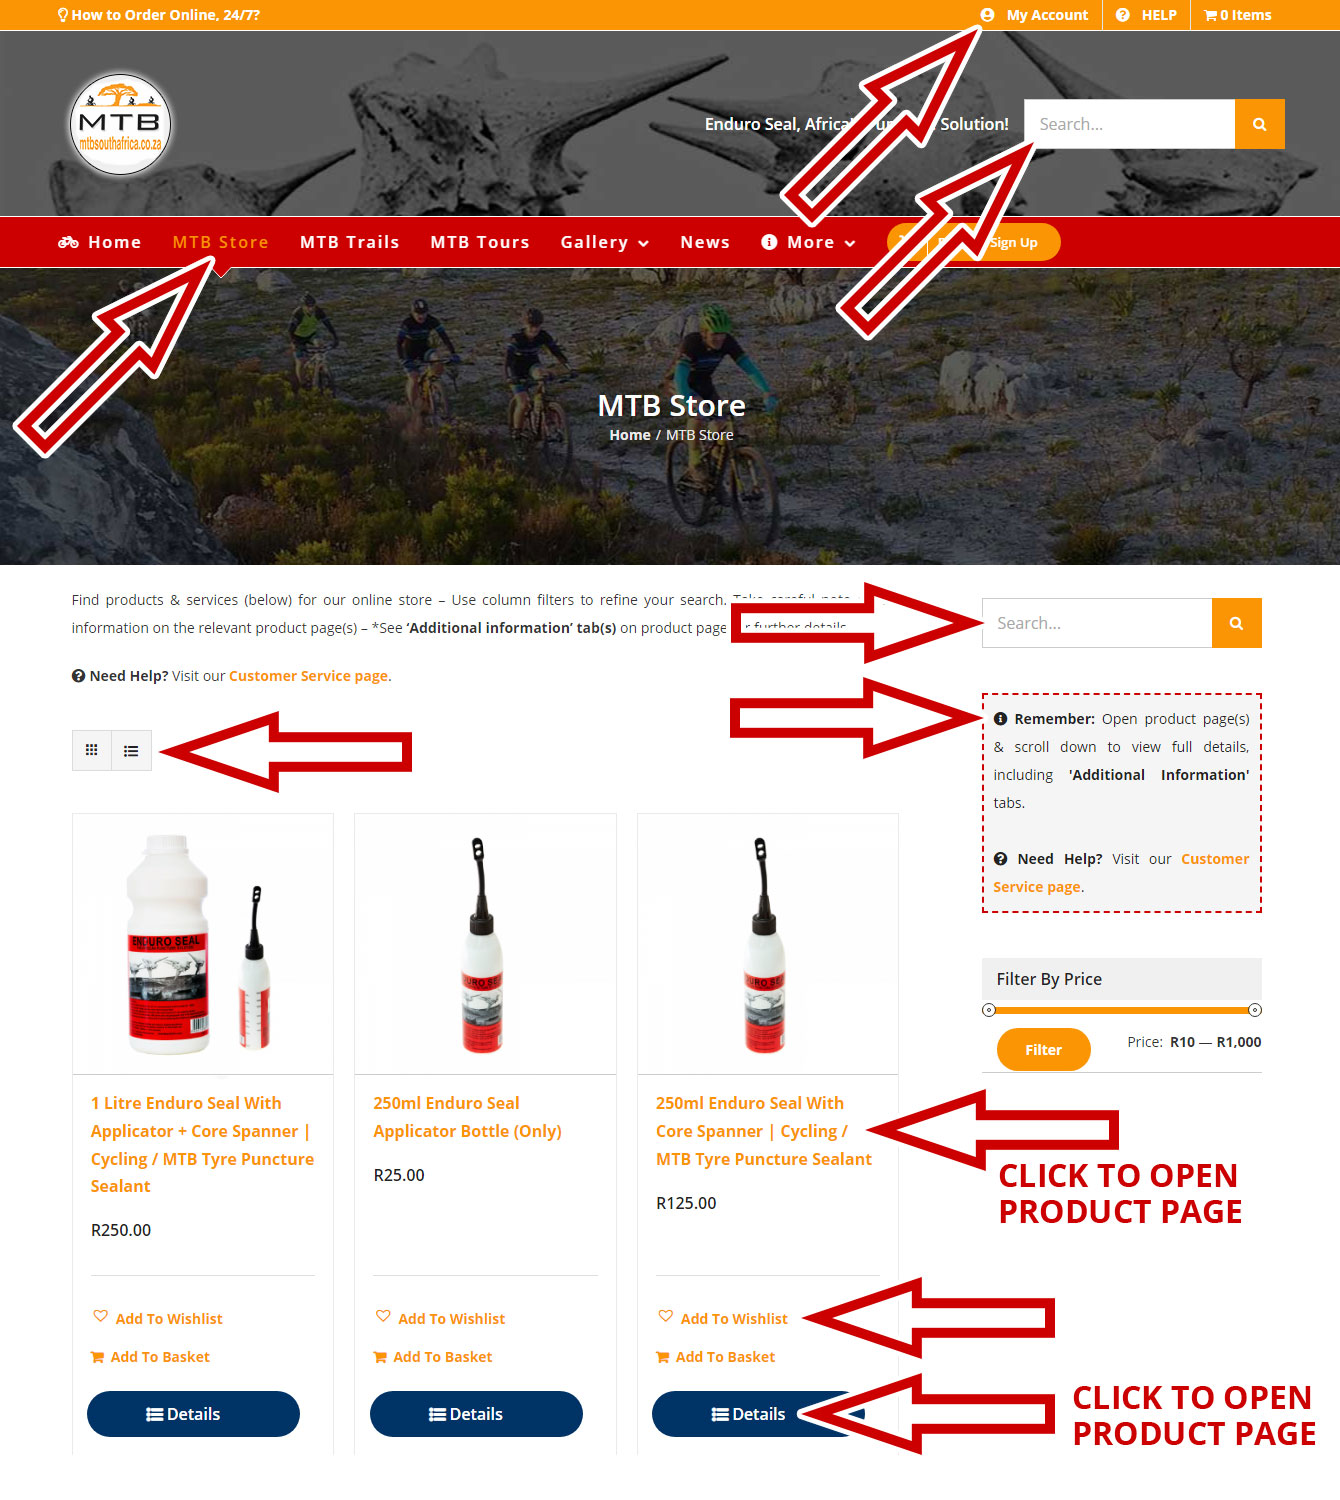 MTB South Africa (MTB SA) / Enduro Seal | Customer Service: Store Category Page Overview